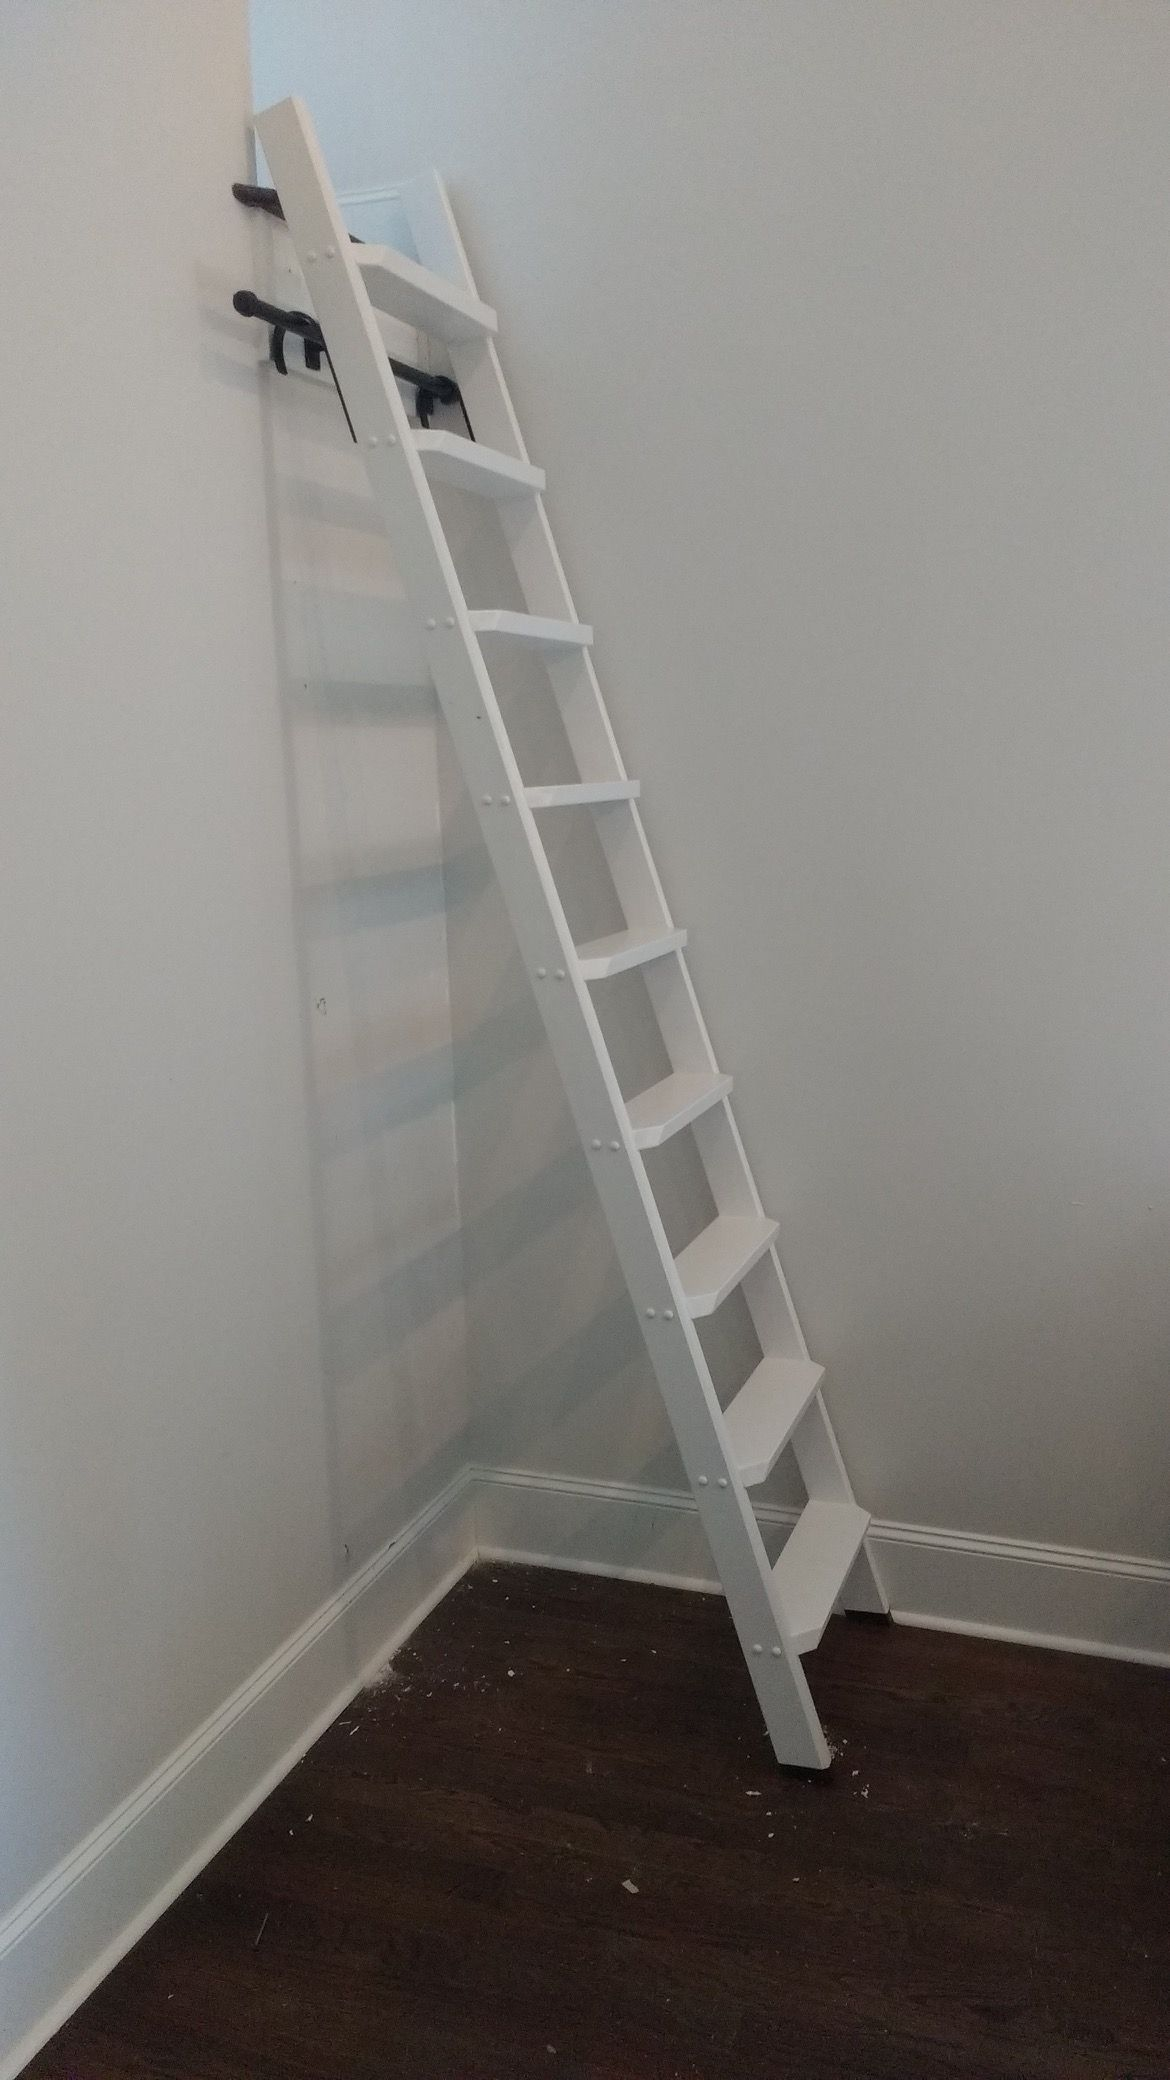 Loft access stairs and ladders san francisco by royo architects - Ladder Ladders Loft Ladder Library Ladder Custom Ladder Customized Ladder